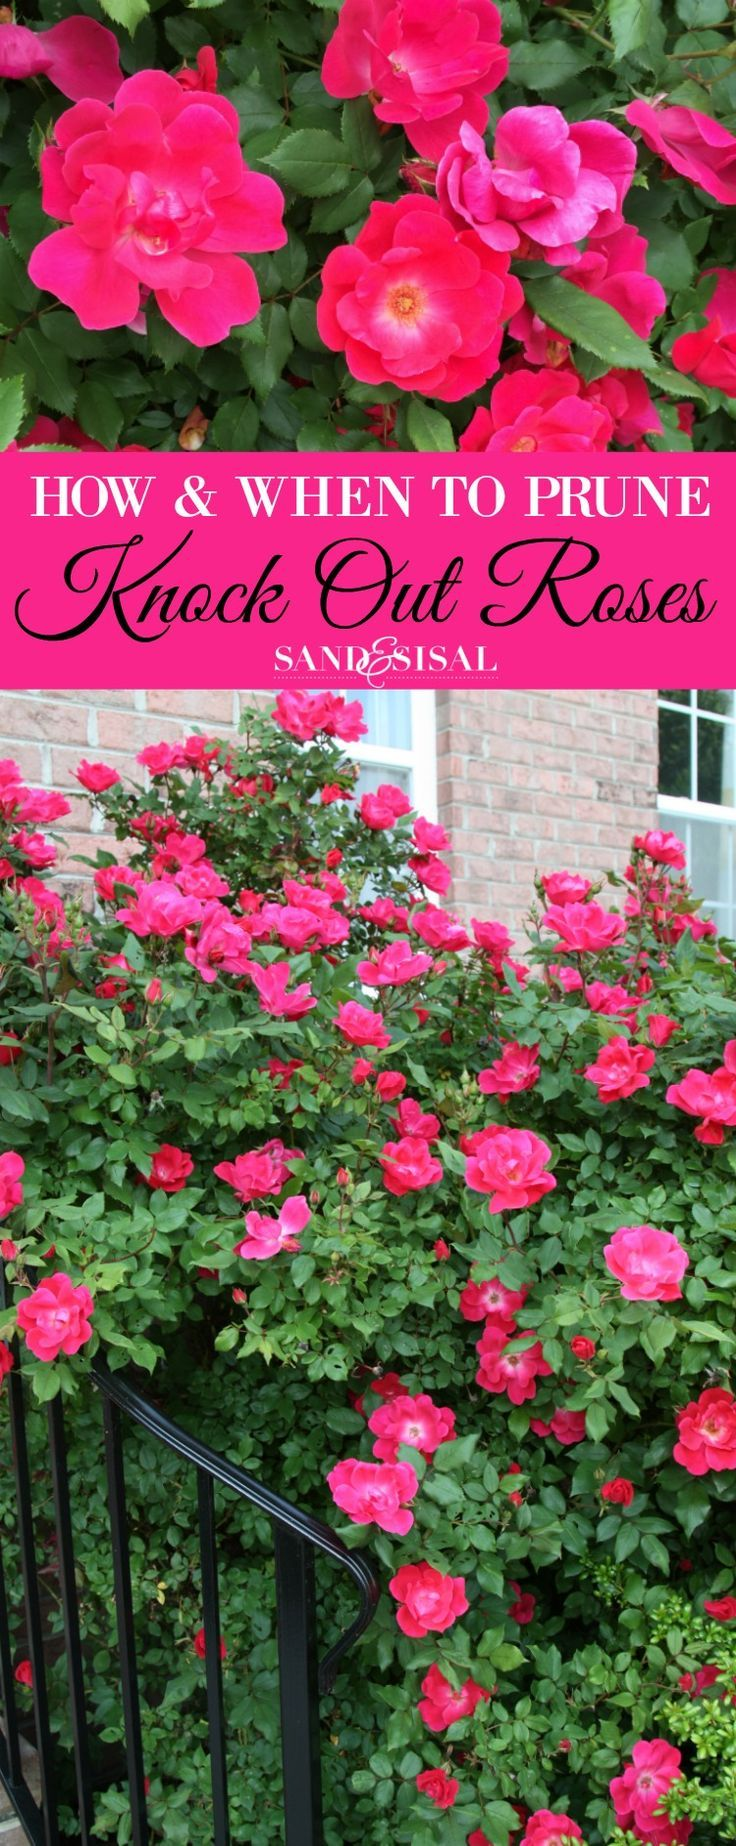 Backyard rose garden - How And When To Prune Knock Out Roses